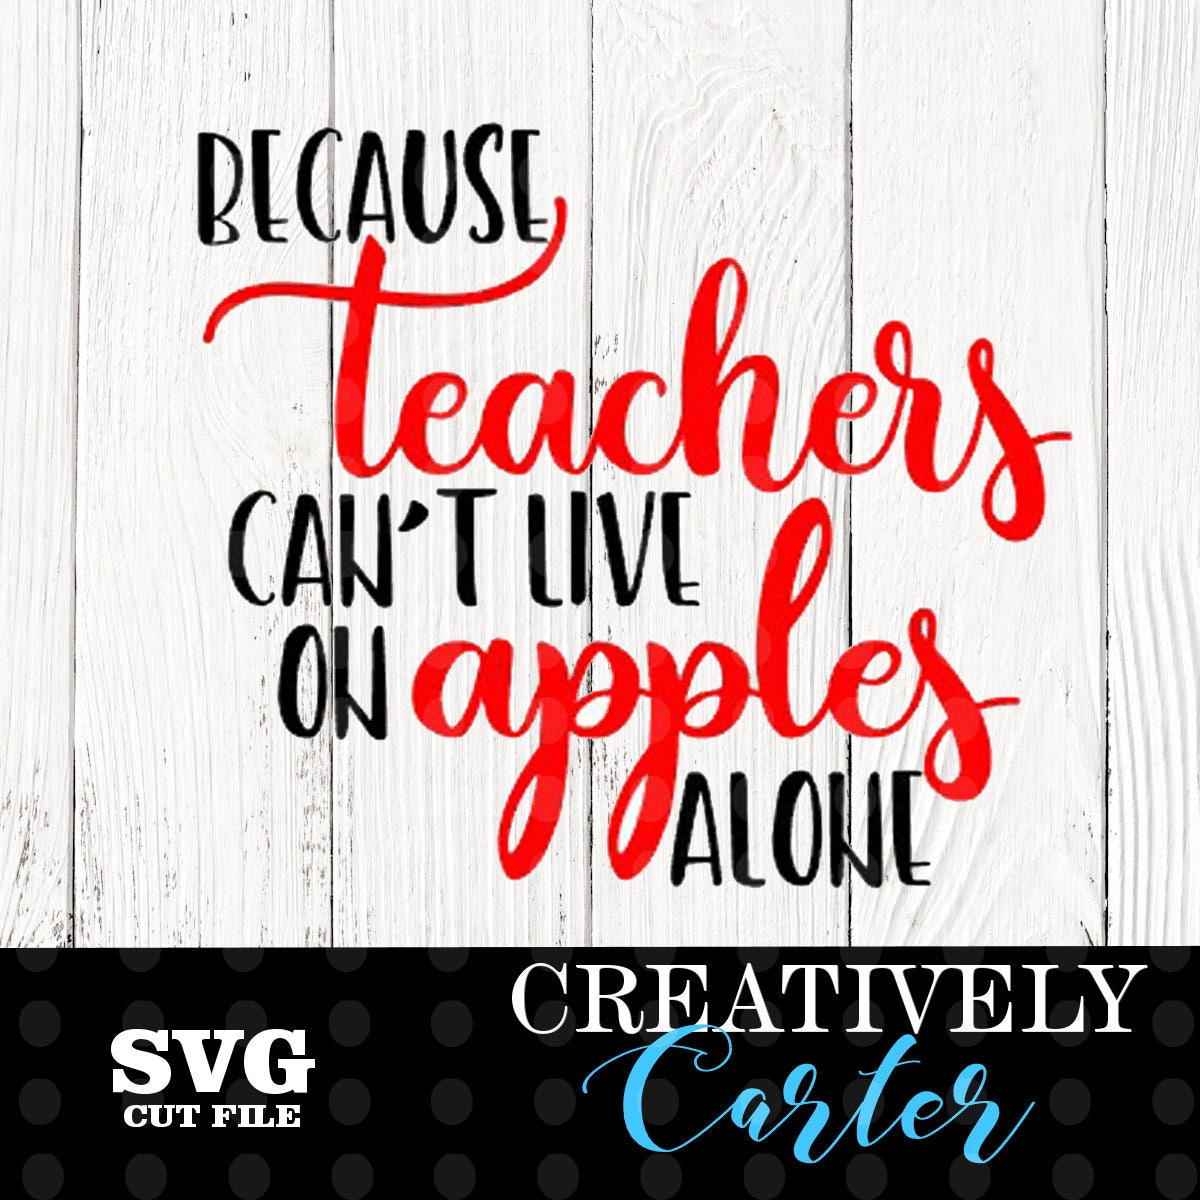 Pot Holder Svg: Because Teachers Can't Live On Apples Alone SVG From